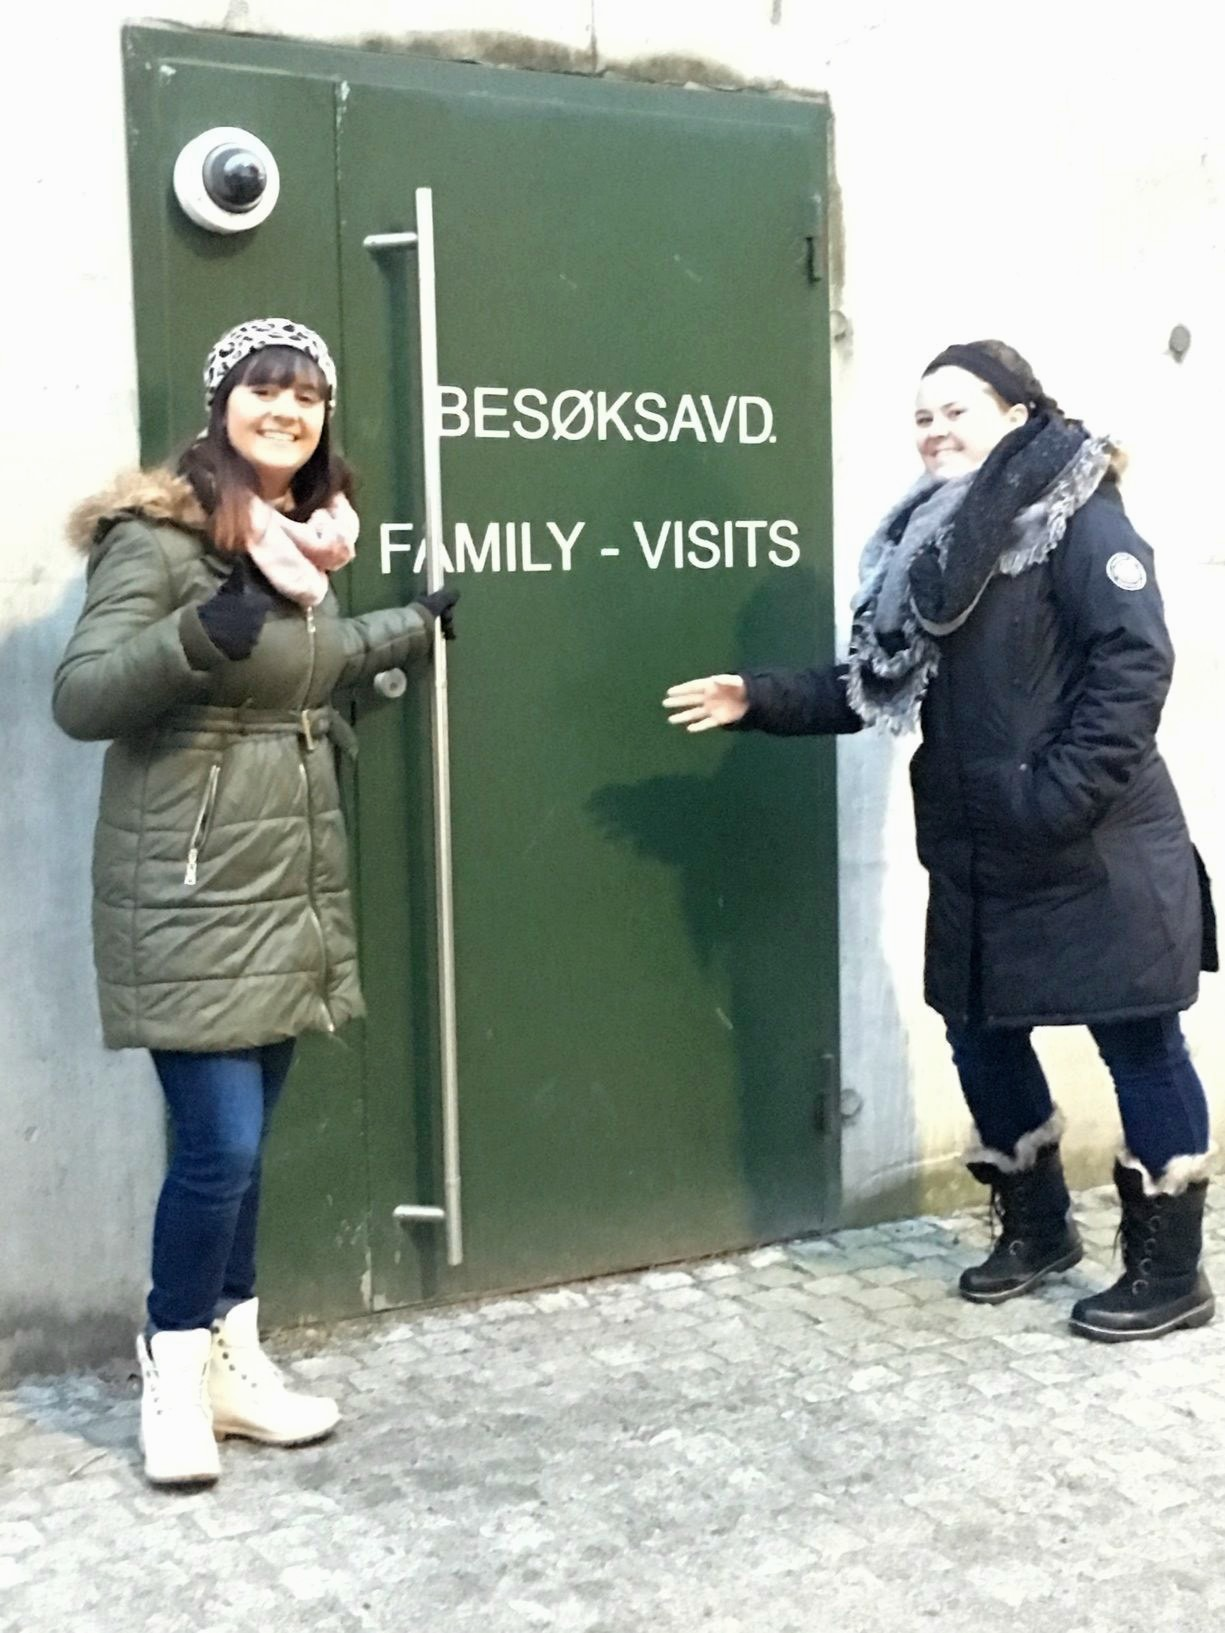 Emma Nolan, left, and Abbey Meyer outside of the family visiting center in Oslo Prison in Norway.